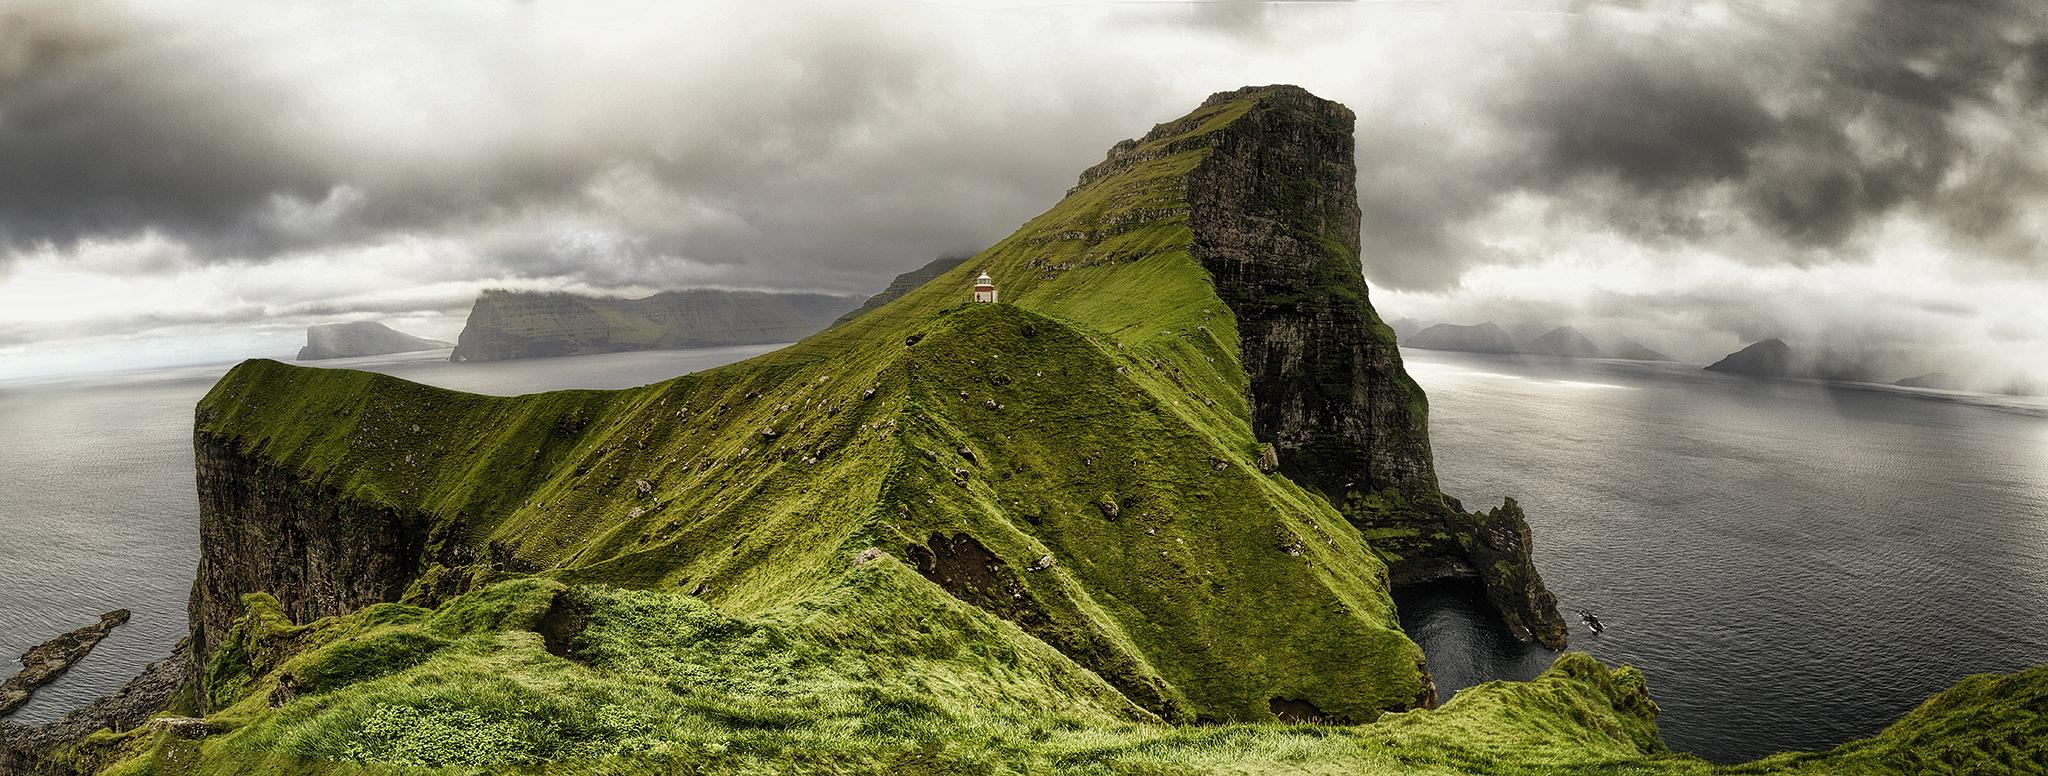 Kallurin on Kalsoy in Faroe Islands by Faroe Islands Hiking